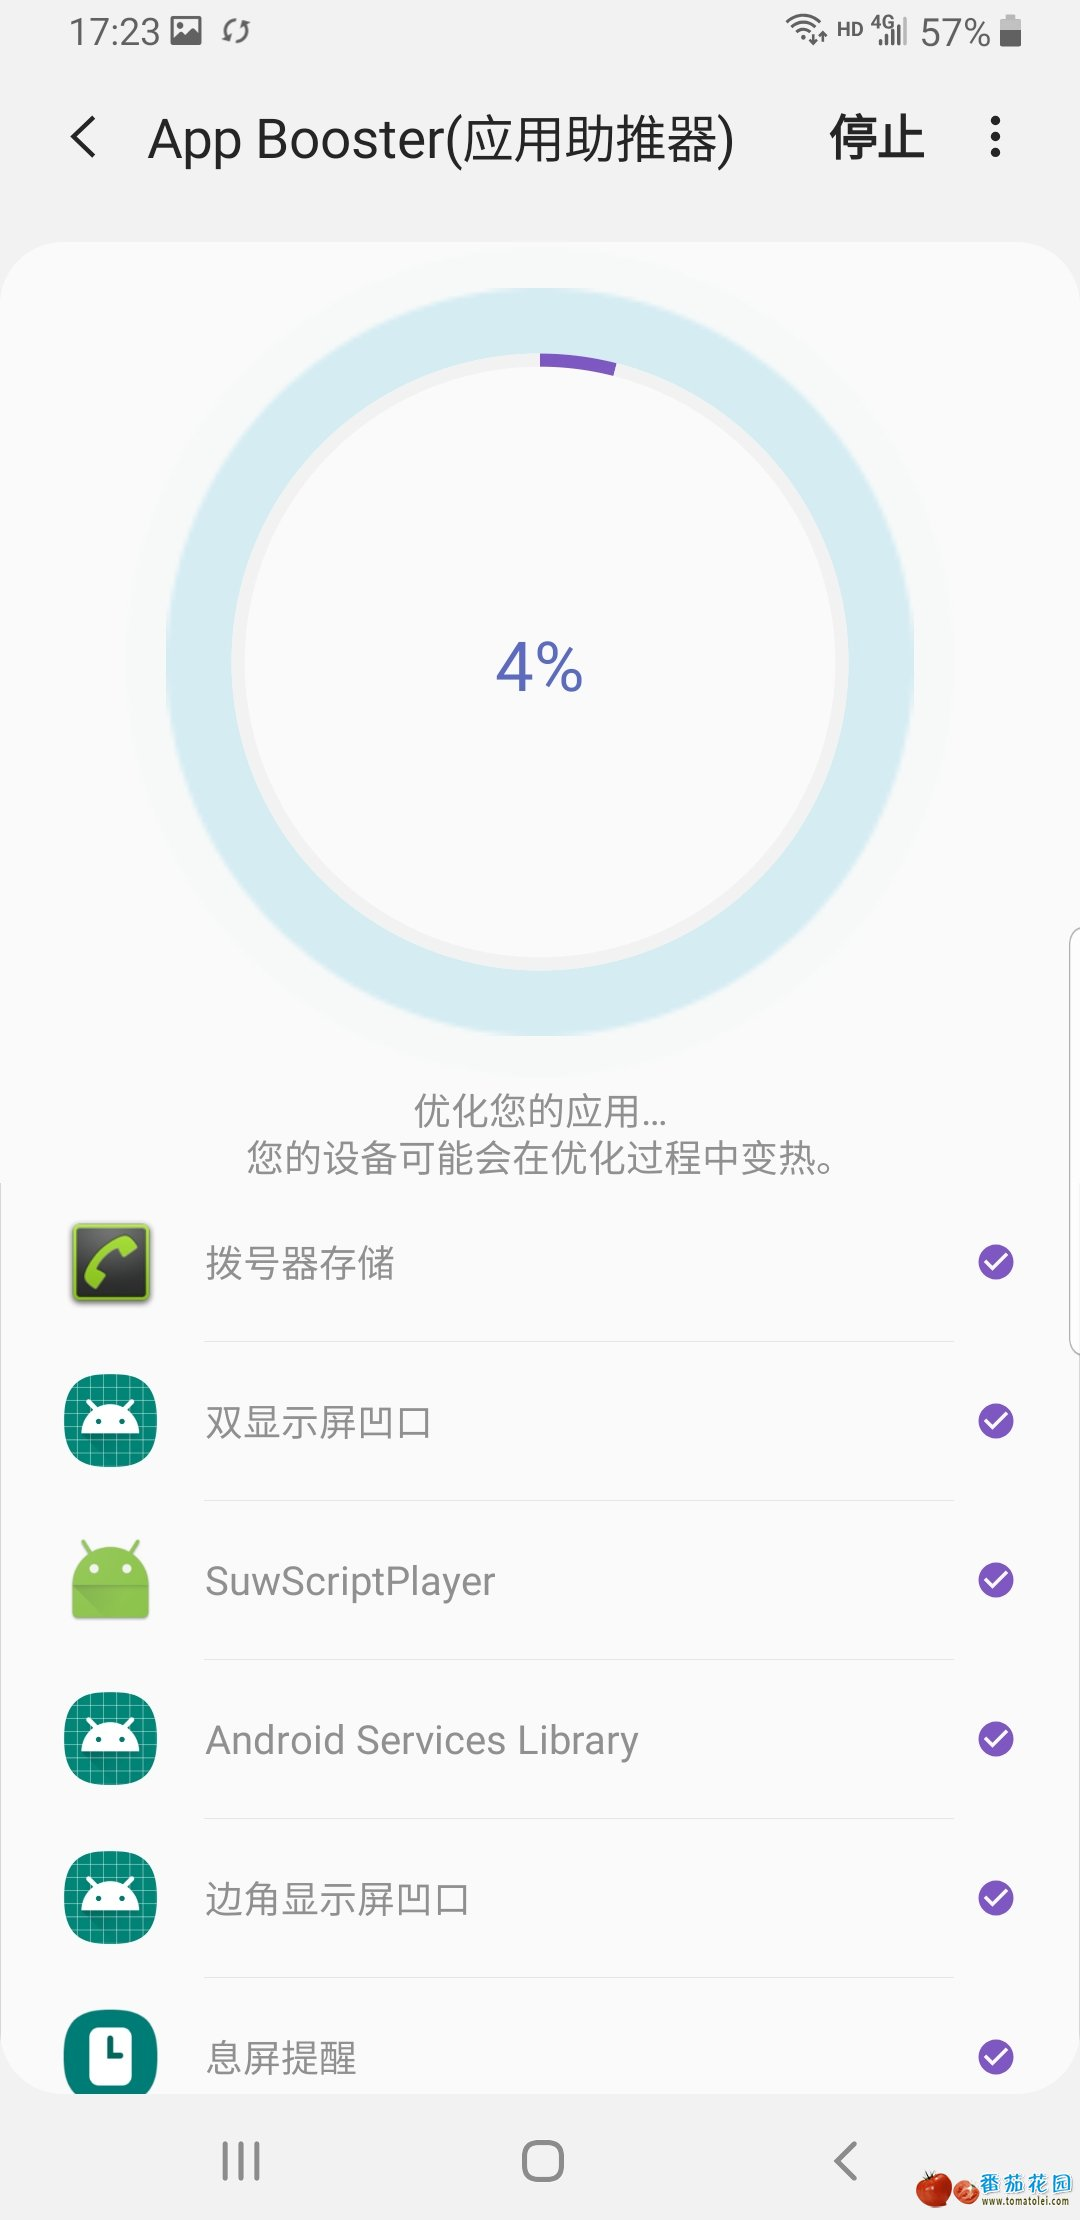 Screenshot_20191109-172356_App Booster.jpg